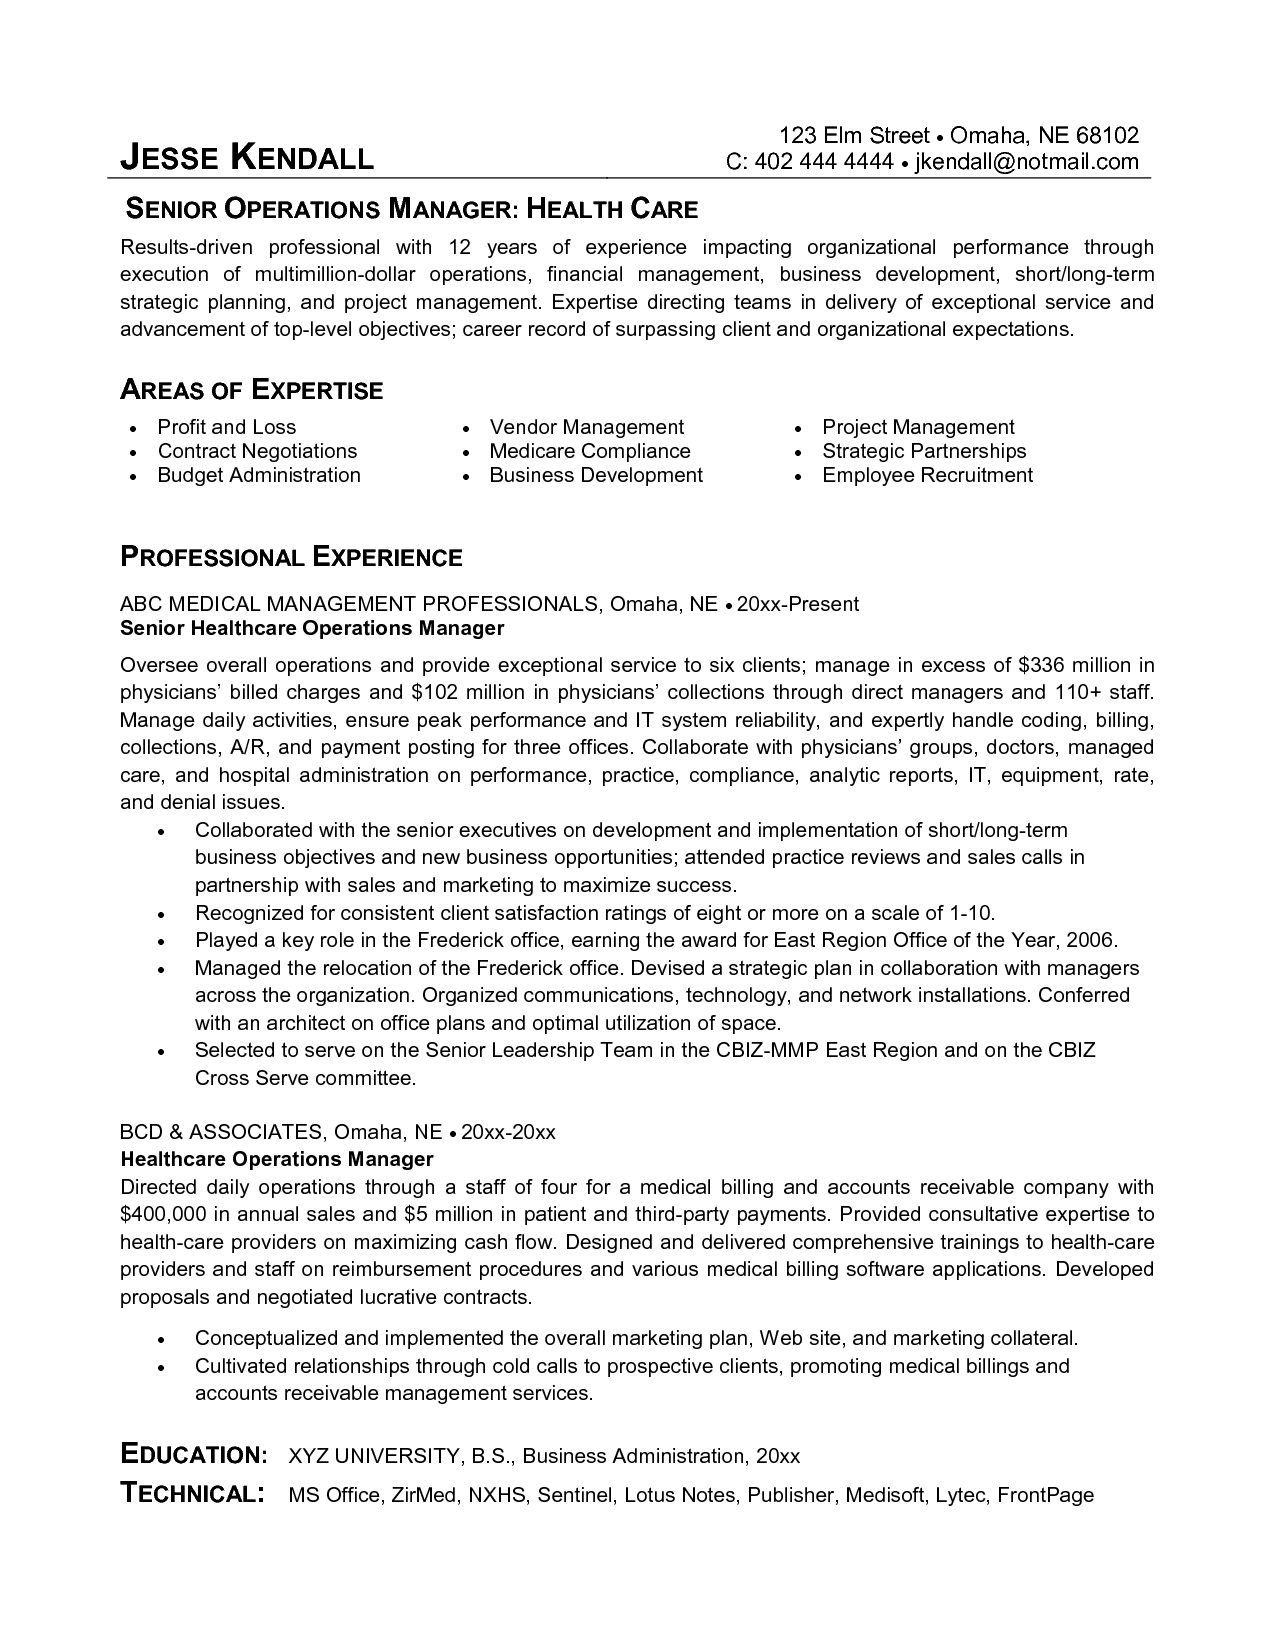 Resume Examples Healthcare Management ResumeExamples